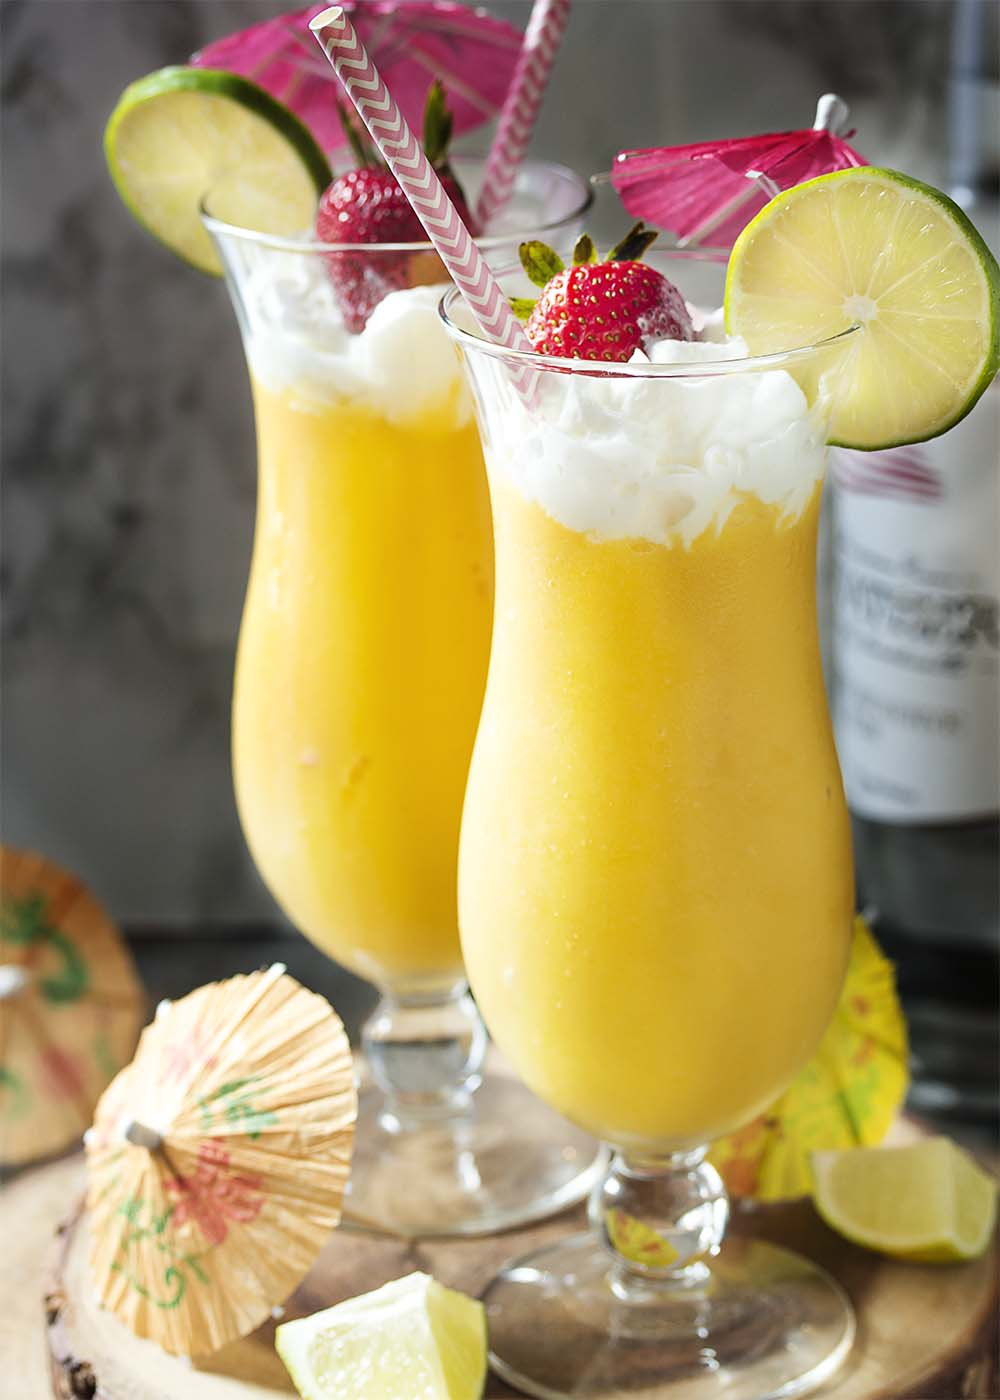 Two tall glasses of frozen mango daiquiri with whipped cream and umbrellas.